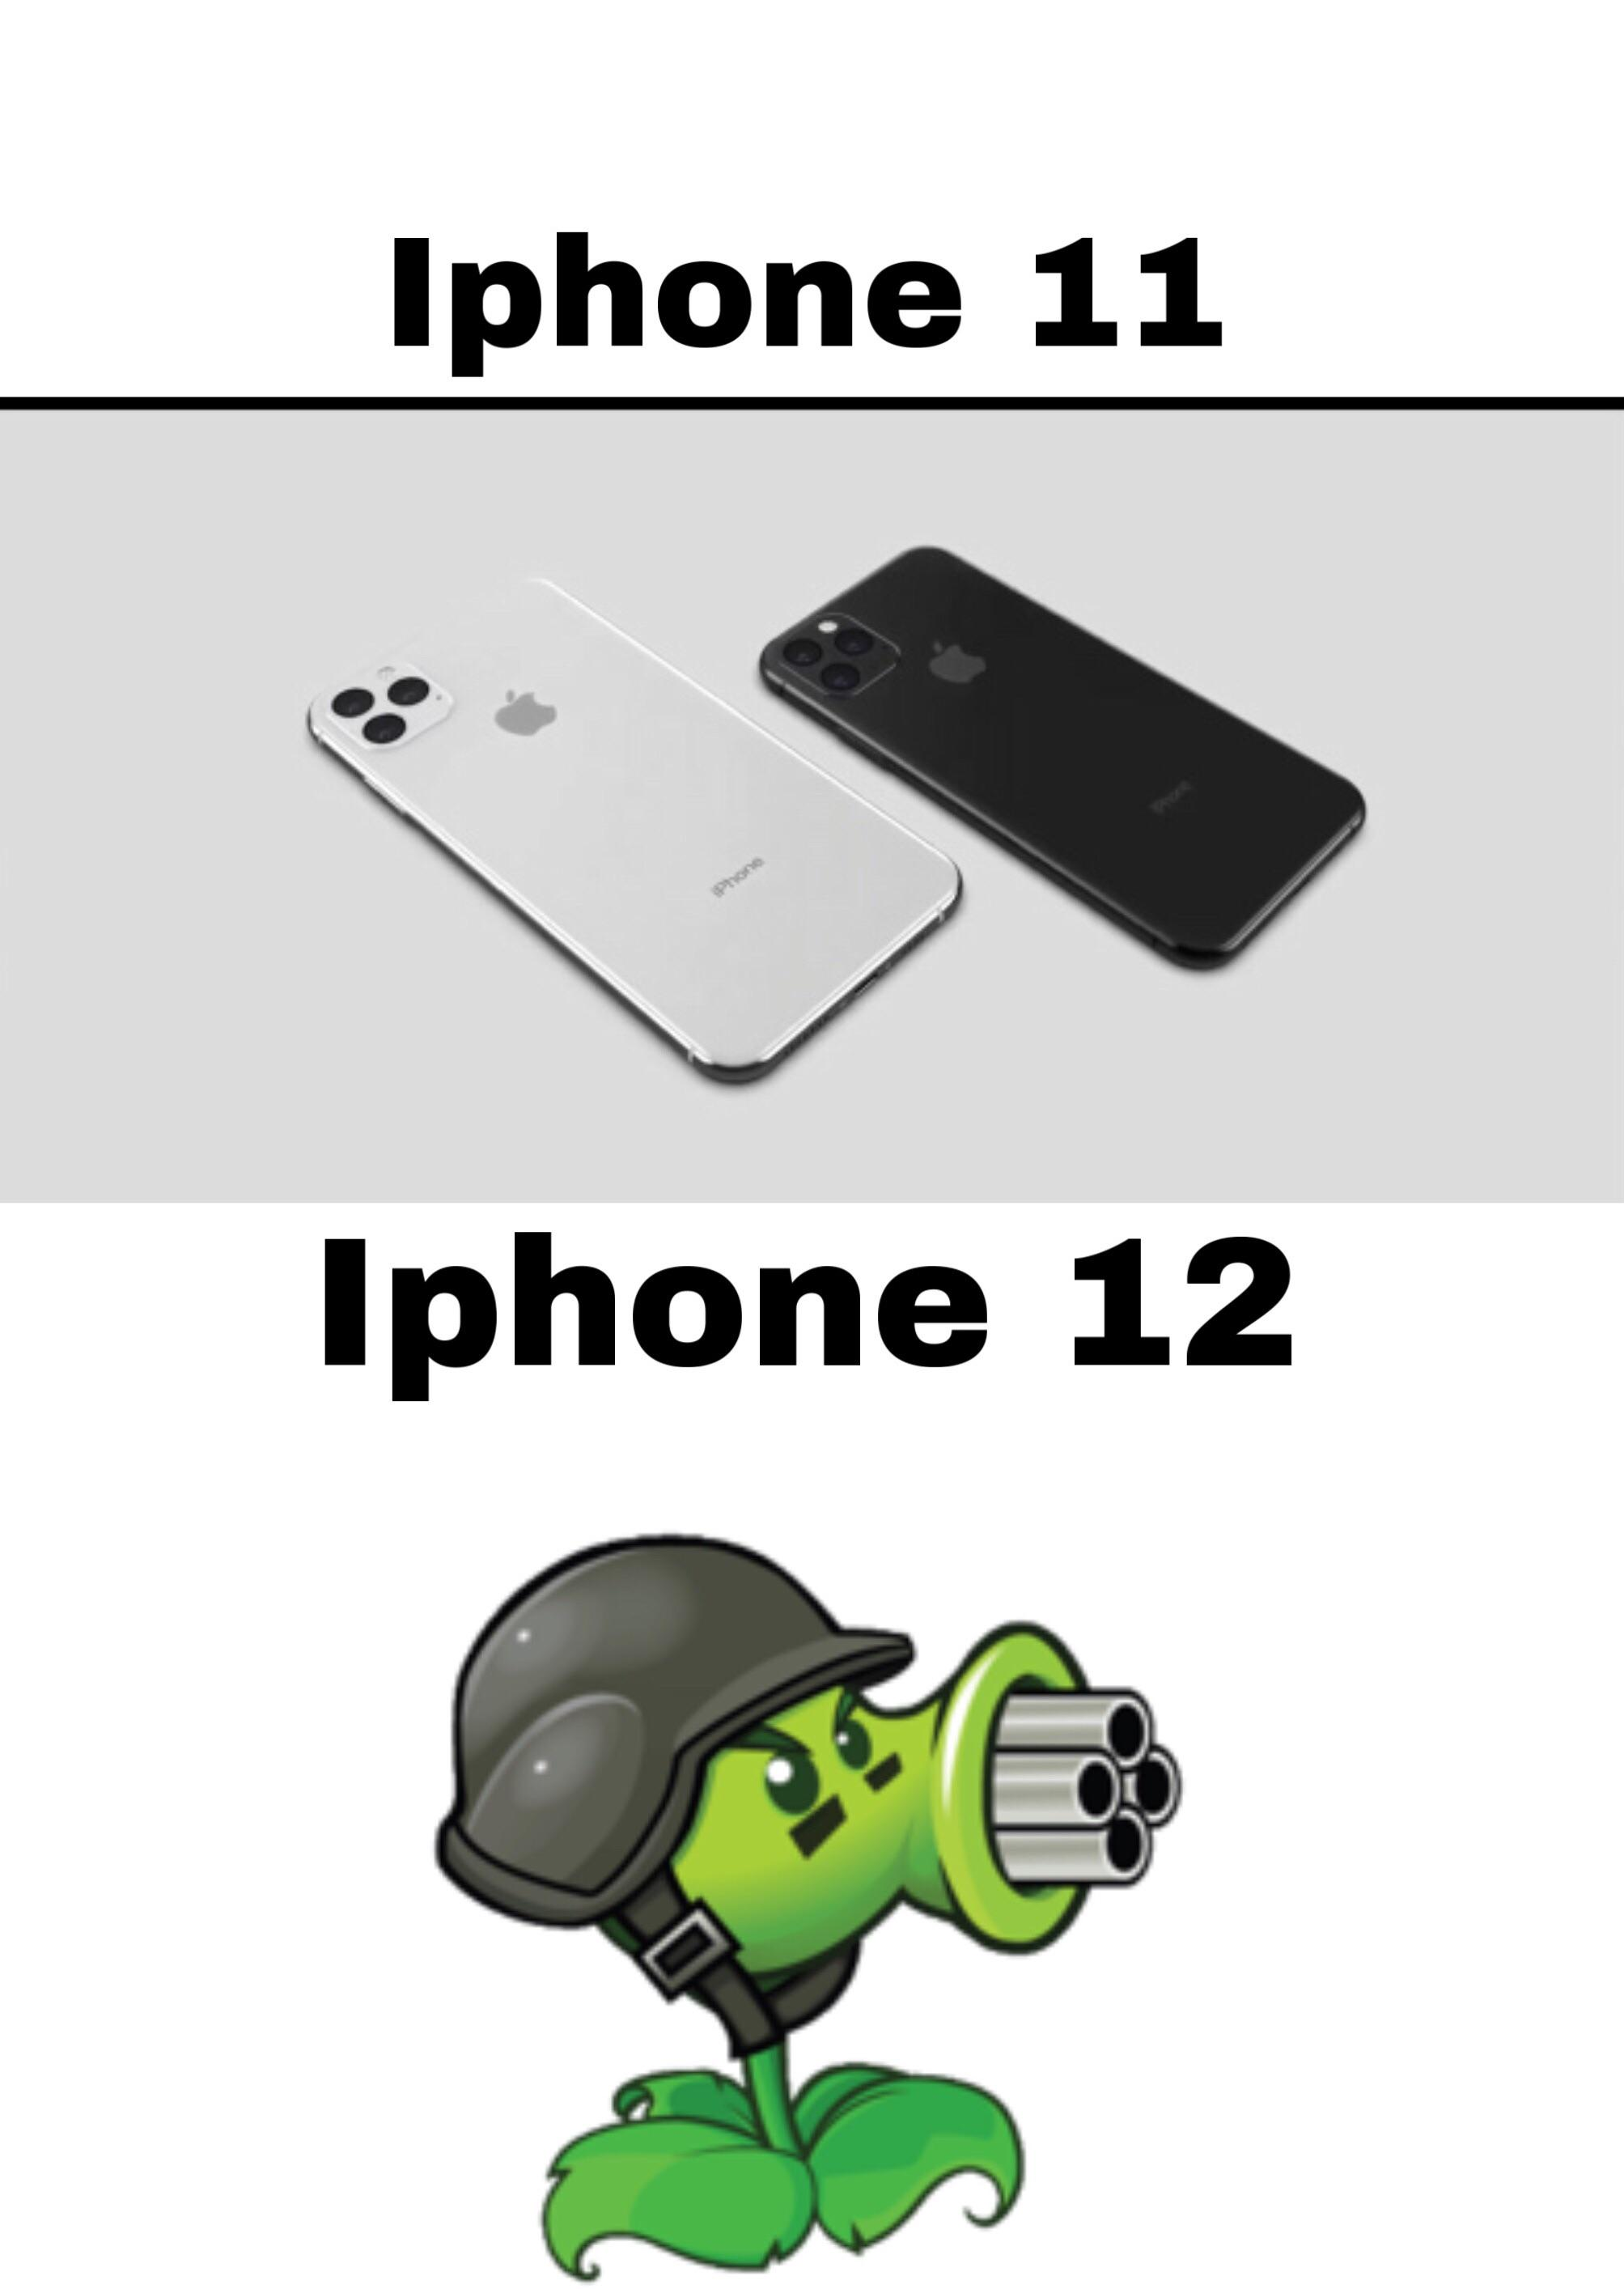 55+ iPhone 11 Camera Memes That Are Sure To Make You Want An